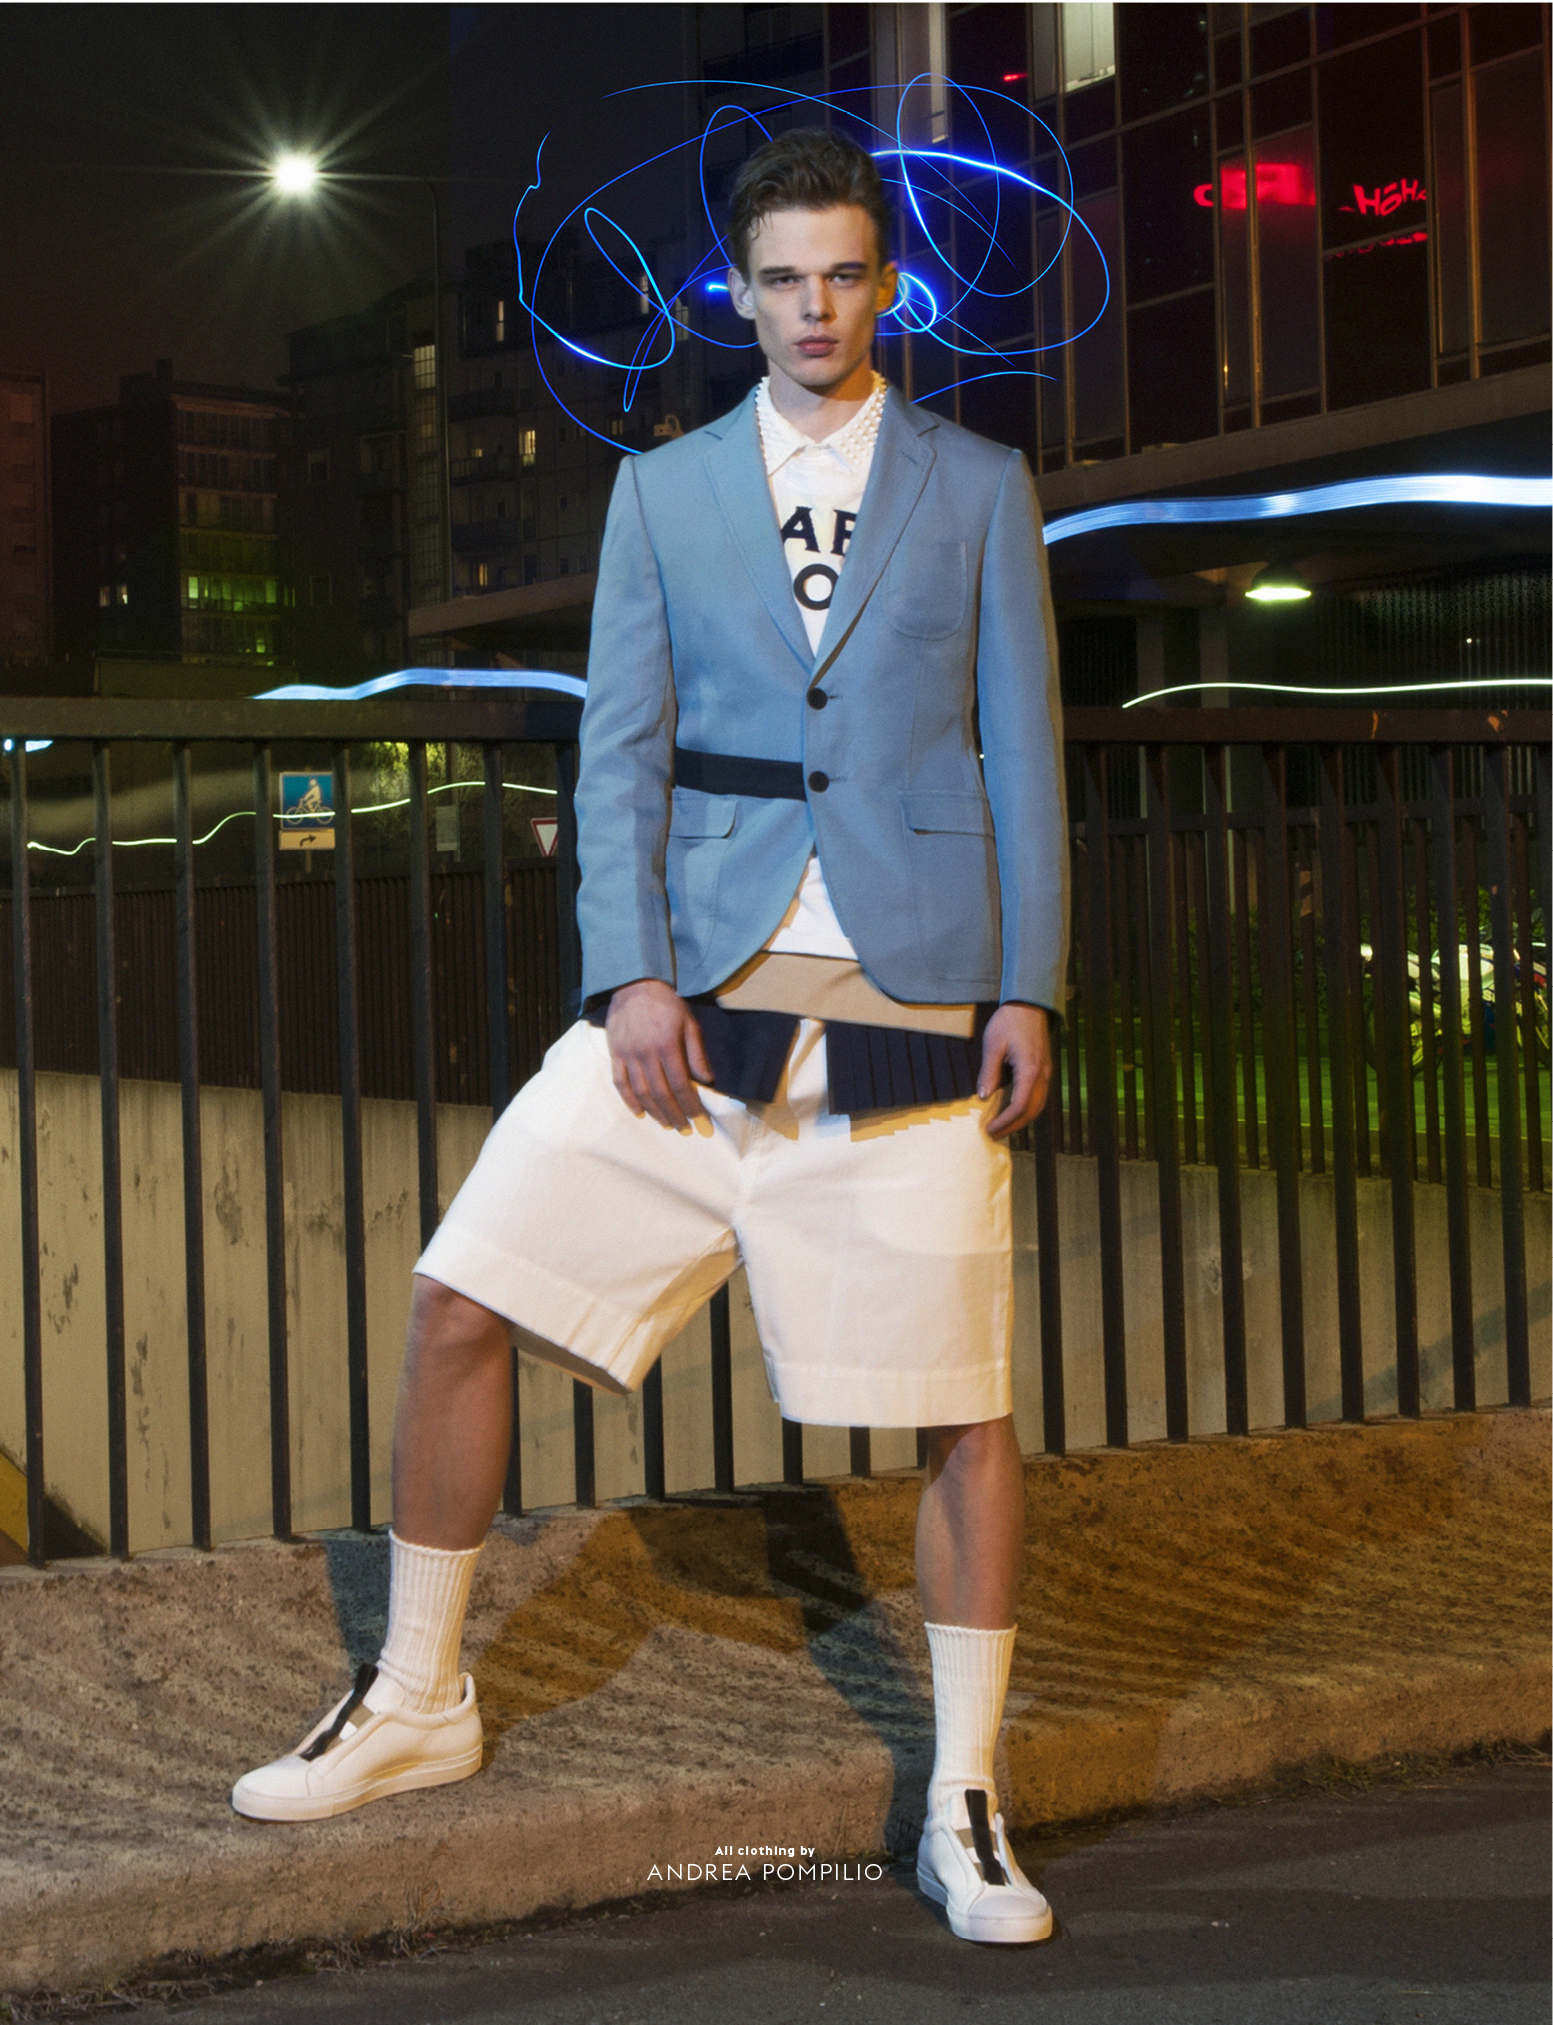 André Bona Brings To Light Latest Styles for CALEO Magazine